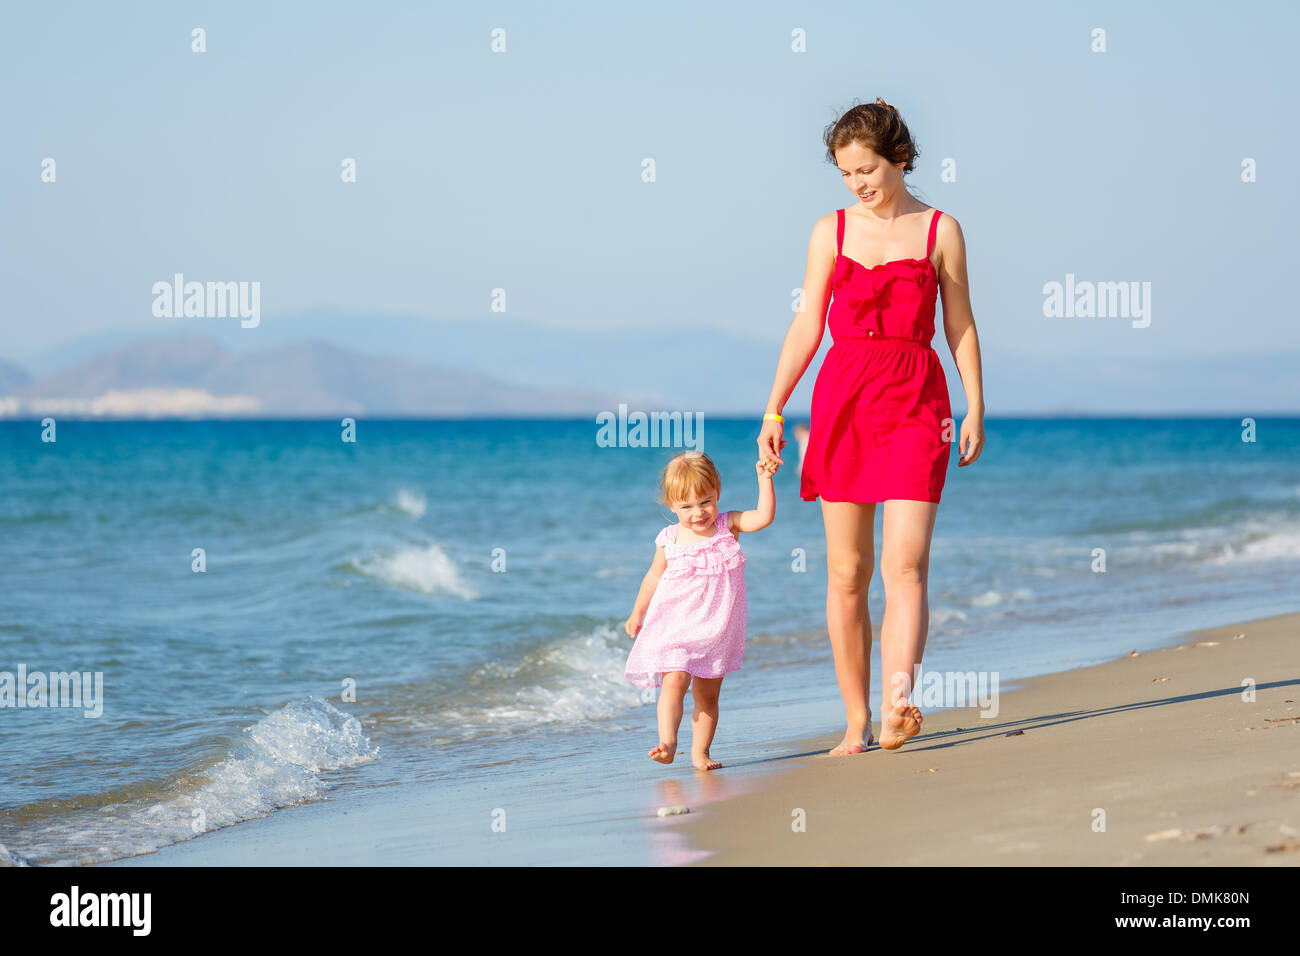 Mother and daughter on the beach - Stock Image